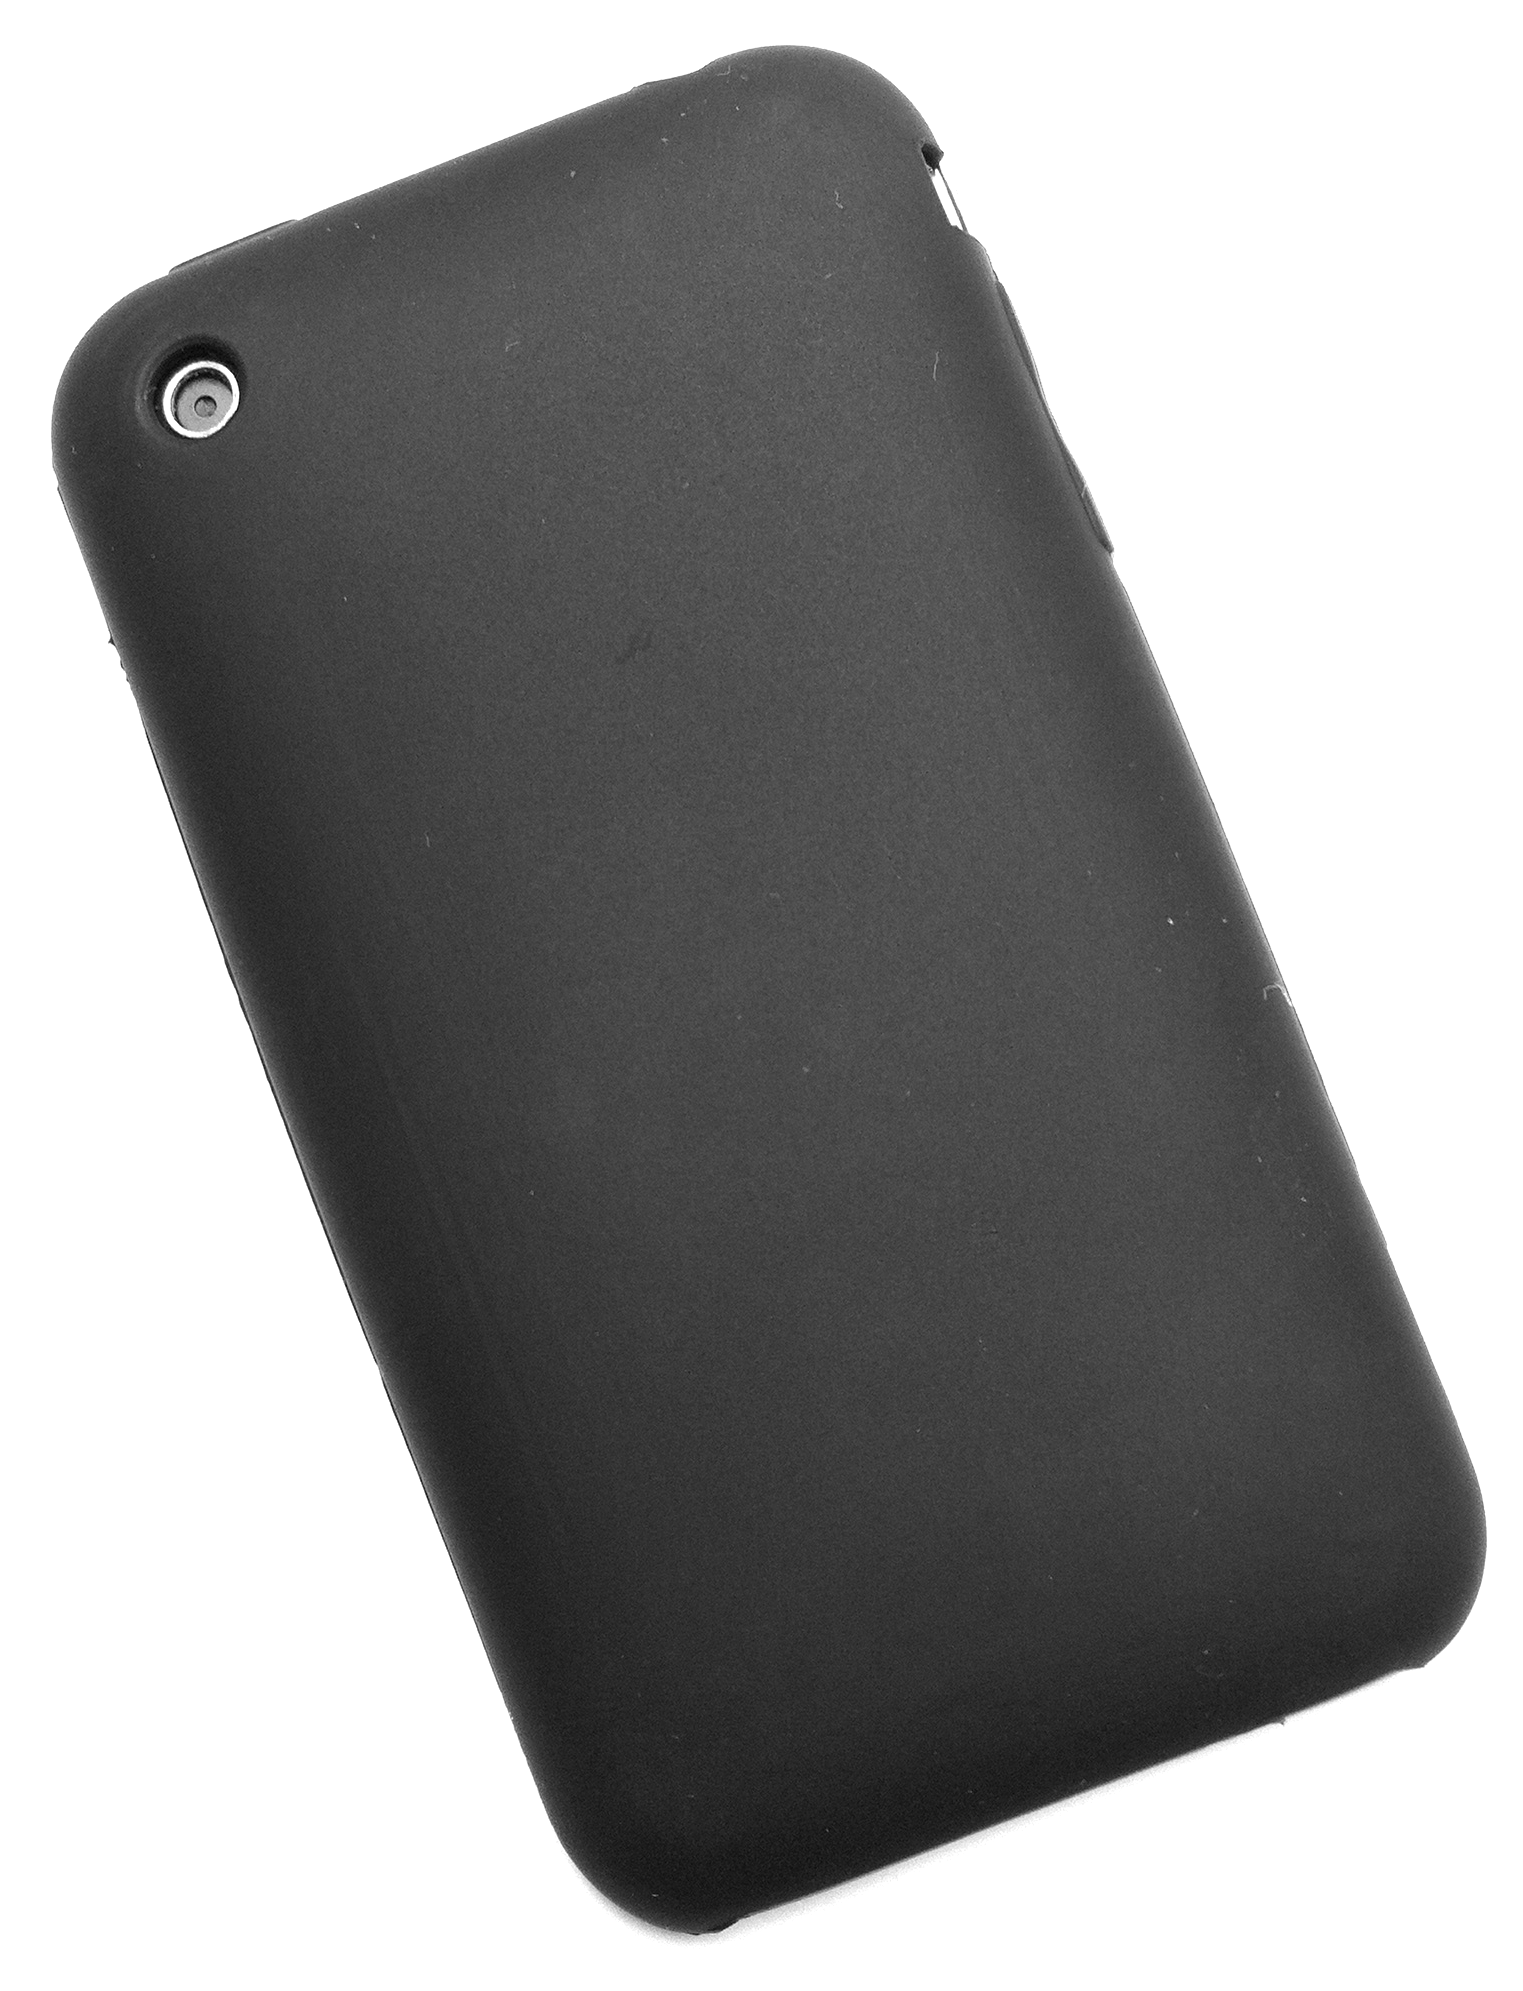 iPhone 3G/3G[S] silikonecover, sort